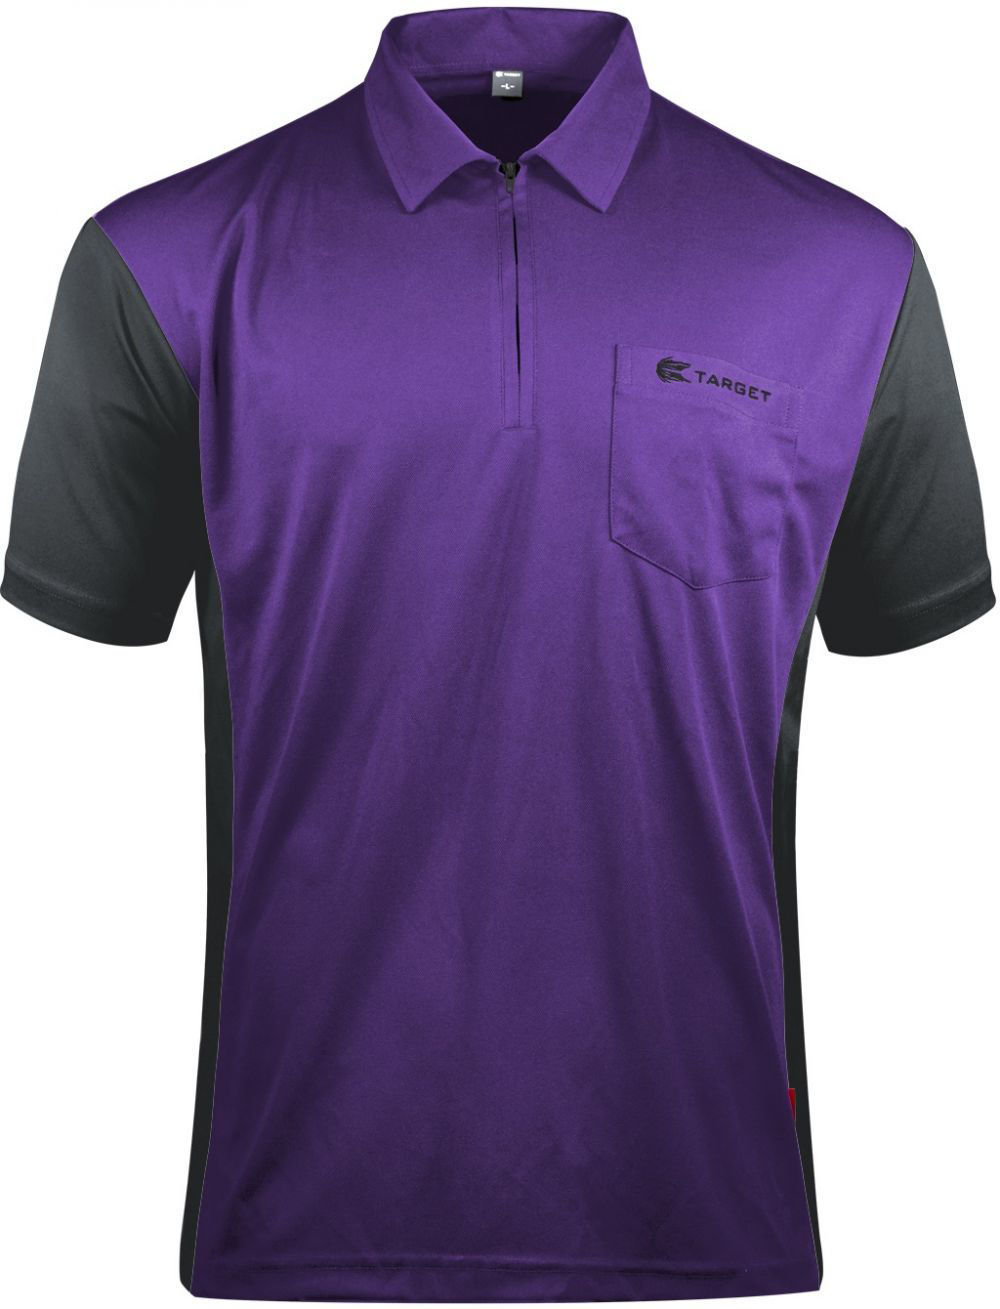 Afbeelding van Target Coolplay 3 Purple Grey